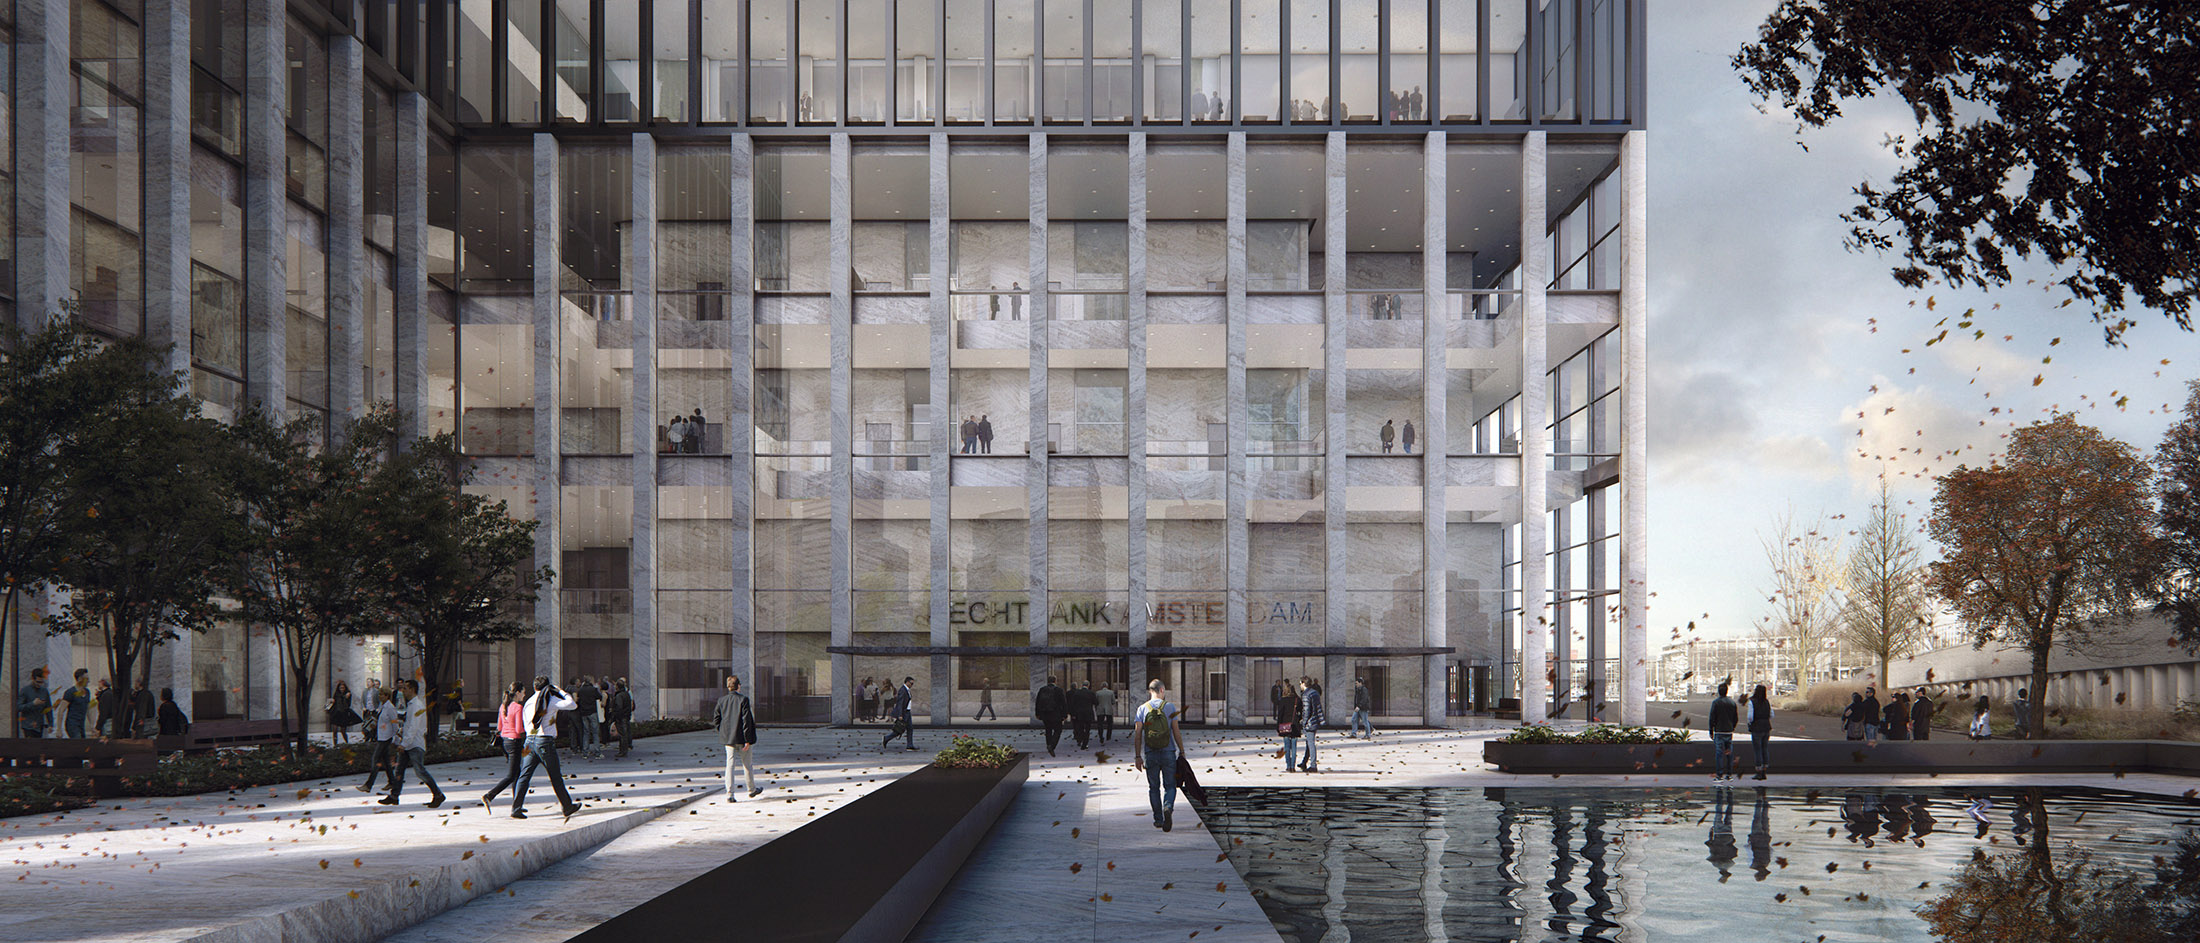 KAAN, New Amsterdam Courthouse, The Netherlands, 2016